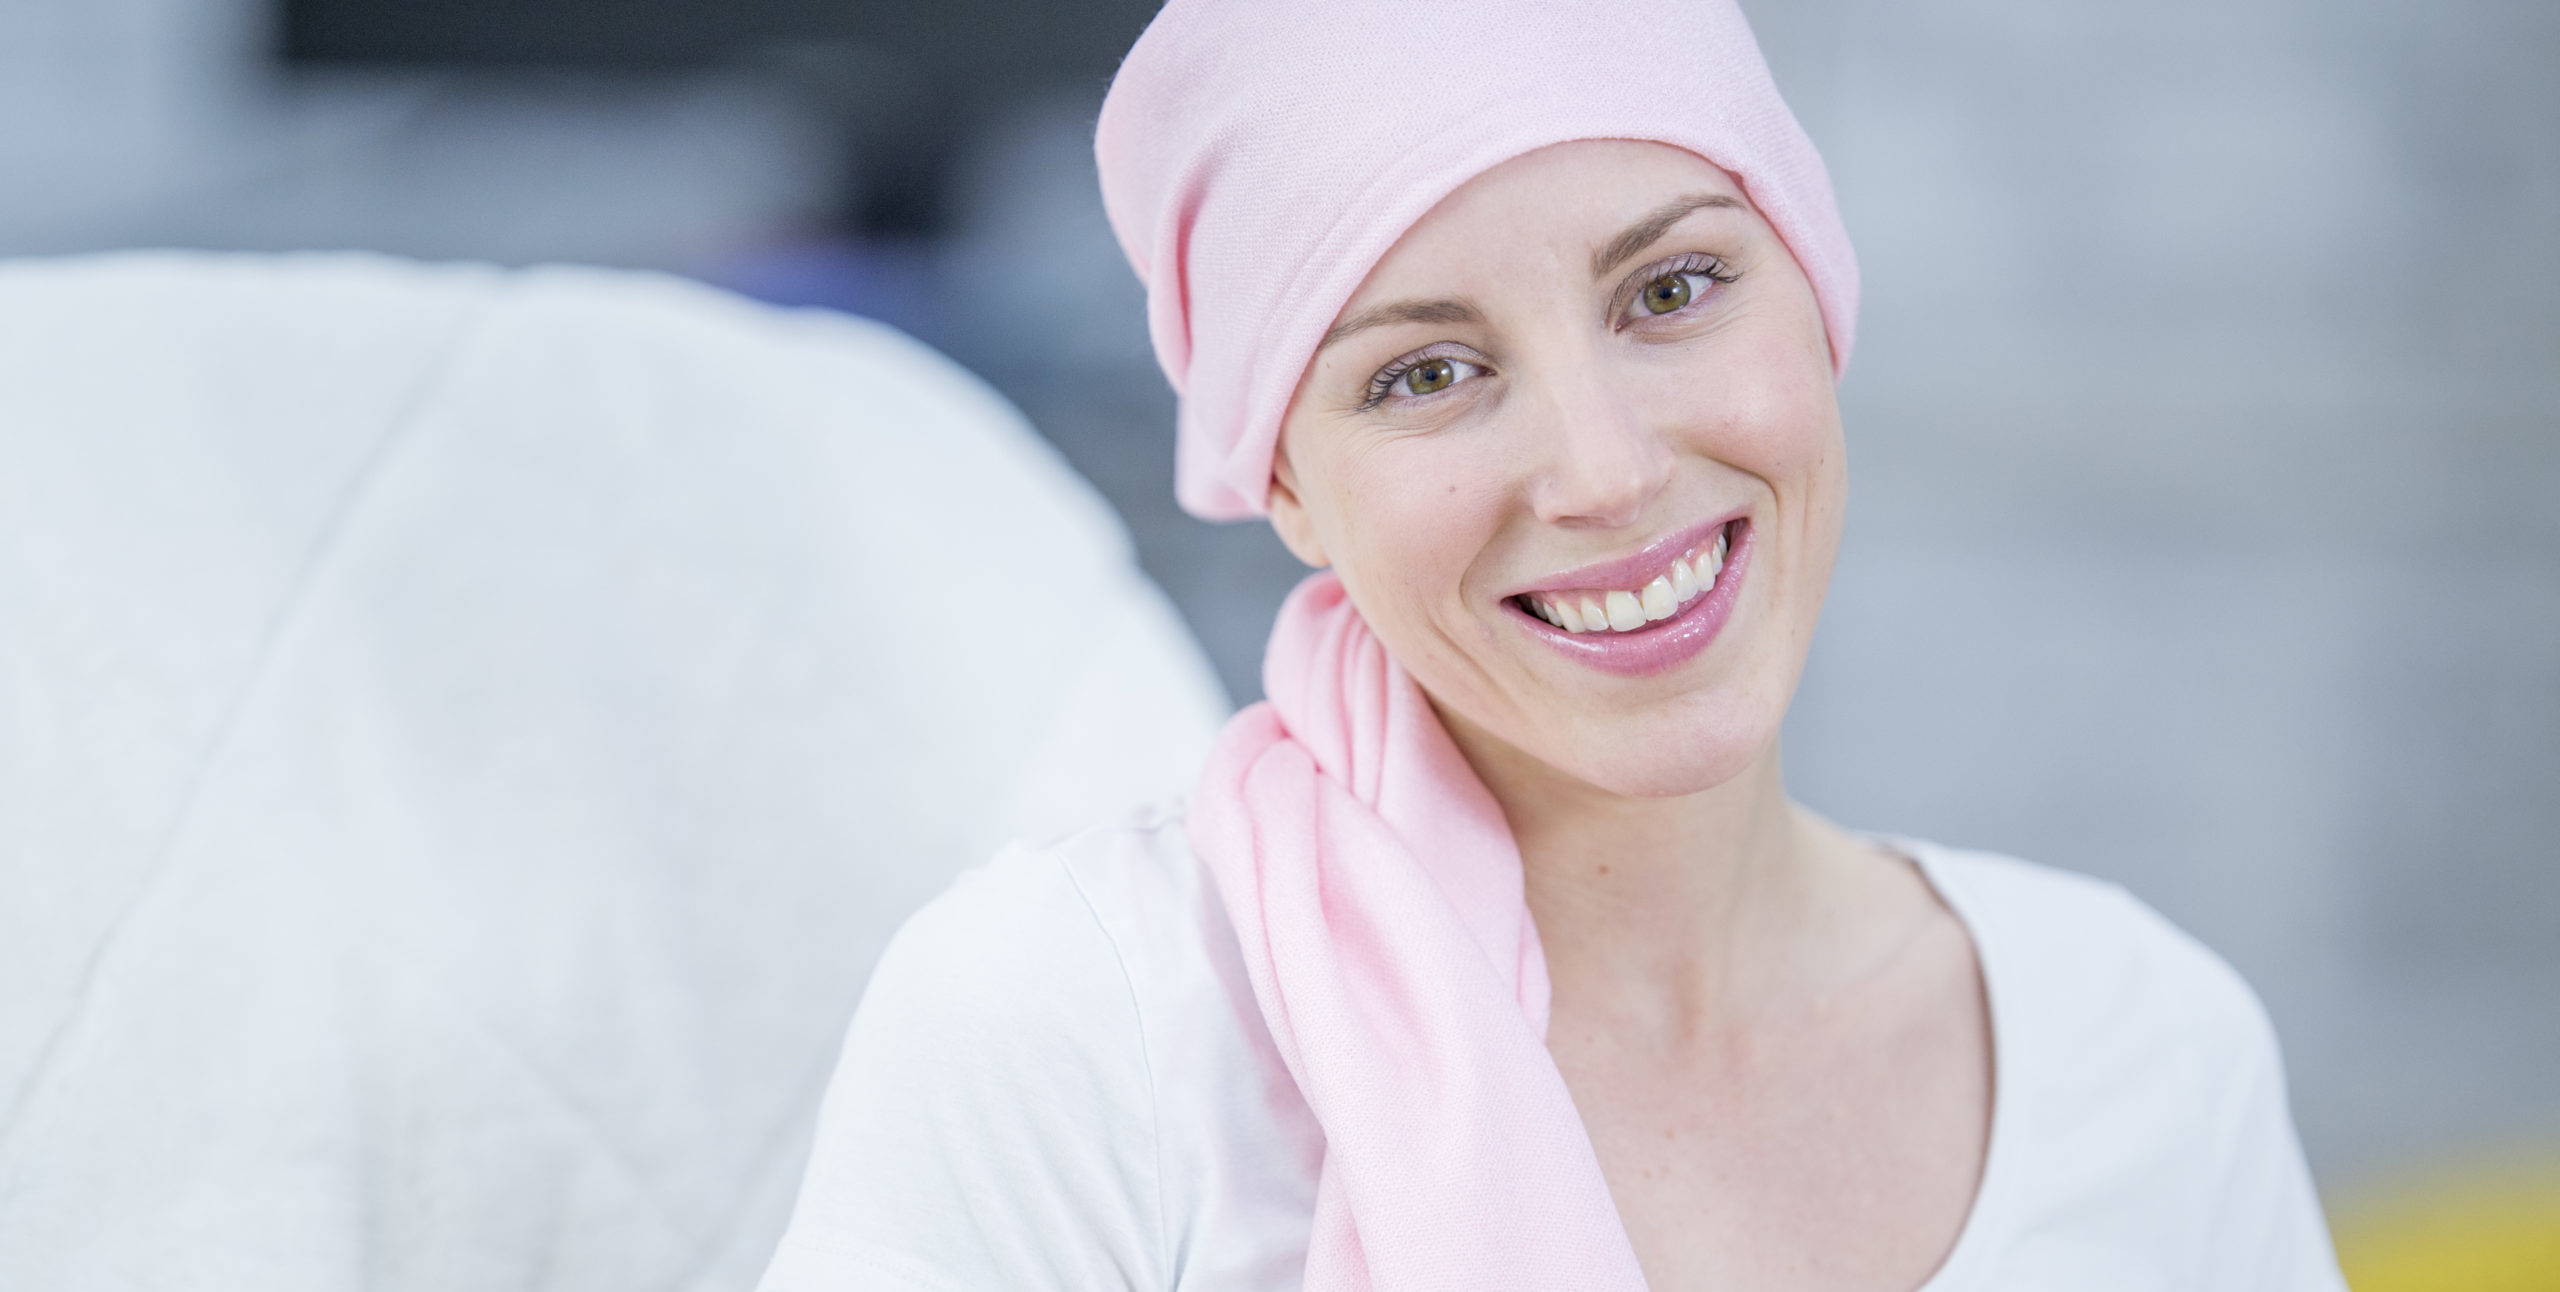 Cancer Patient in Head Scarf